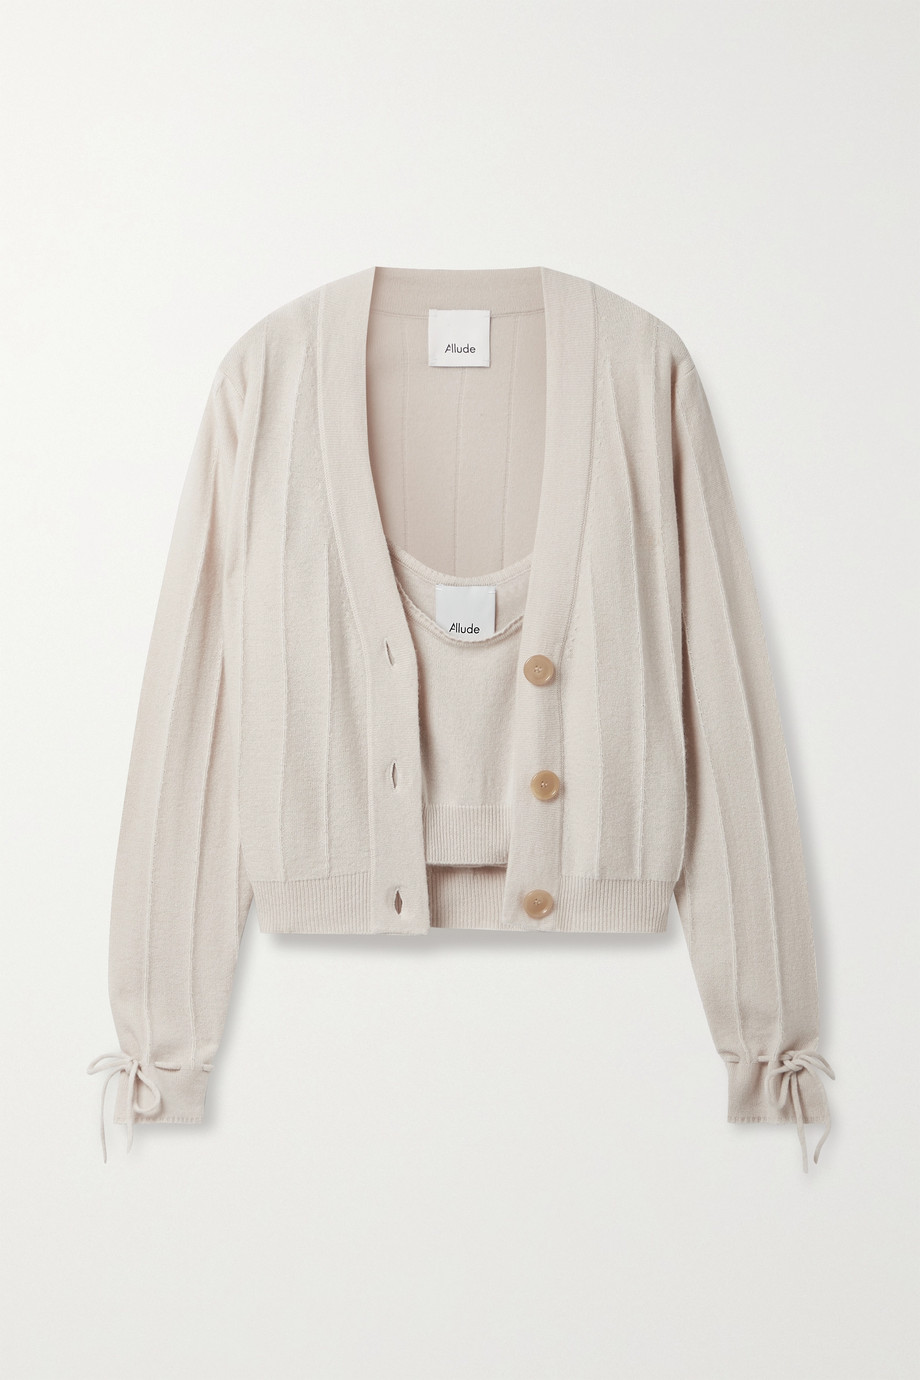 ALLUDE Cropped cashmere cardigan and tank set